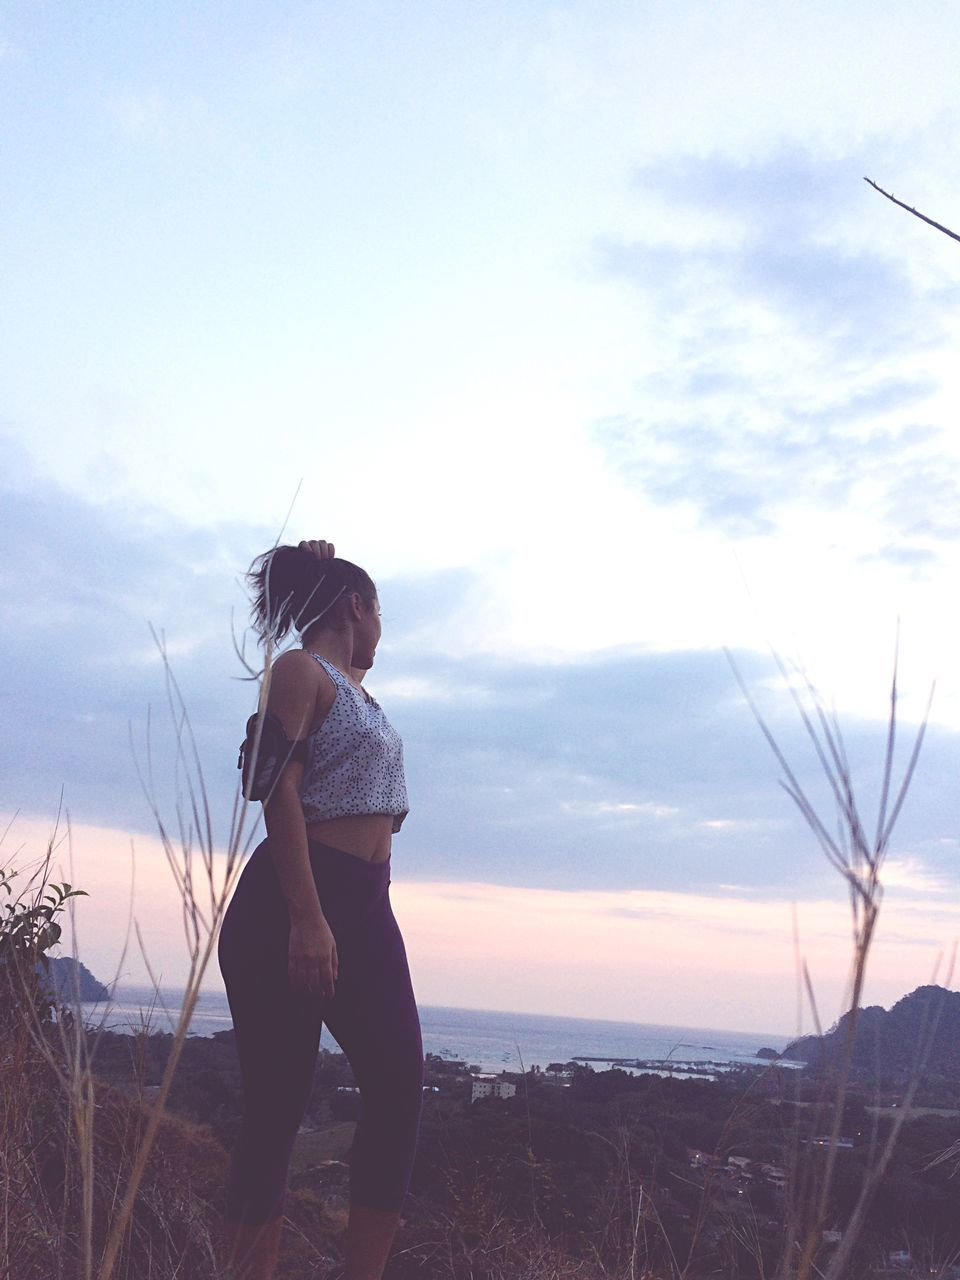 sky, one person, real people, nature, childhood, cloud - sky, leisure activity, sunset, standing, outdoors, beauty in nature, water, full length, sea, day, grass, people